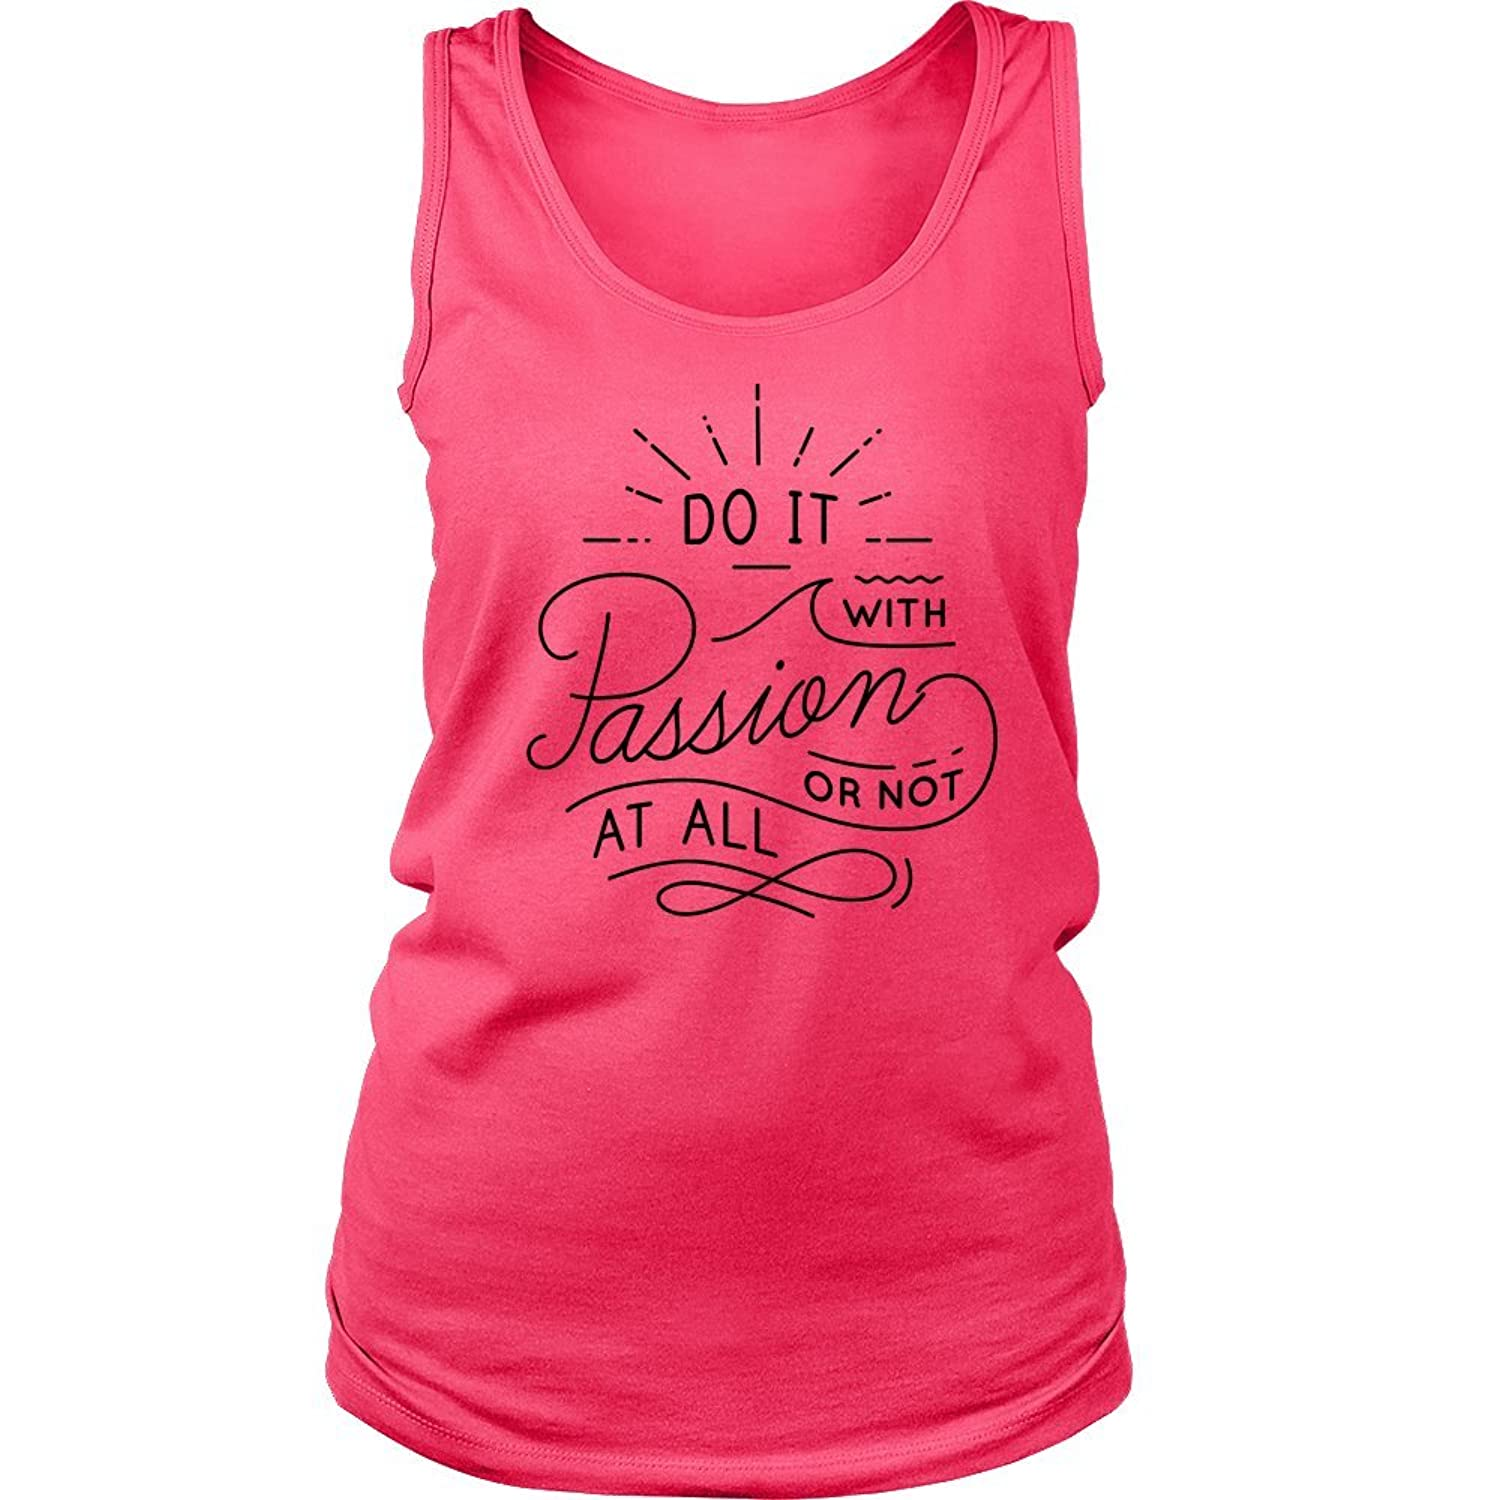 Do it with Passion Inspirational Motivational Quote Women's Comfort Fit Tank Top